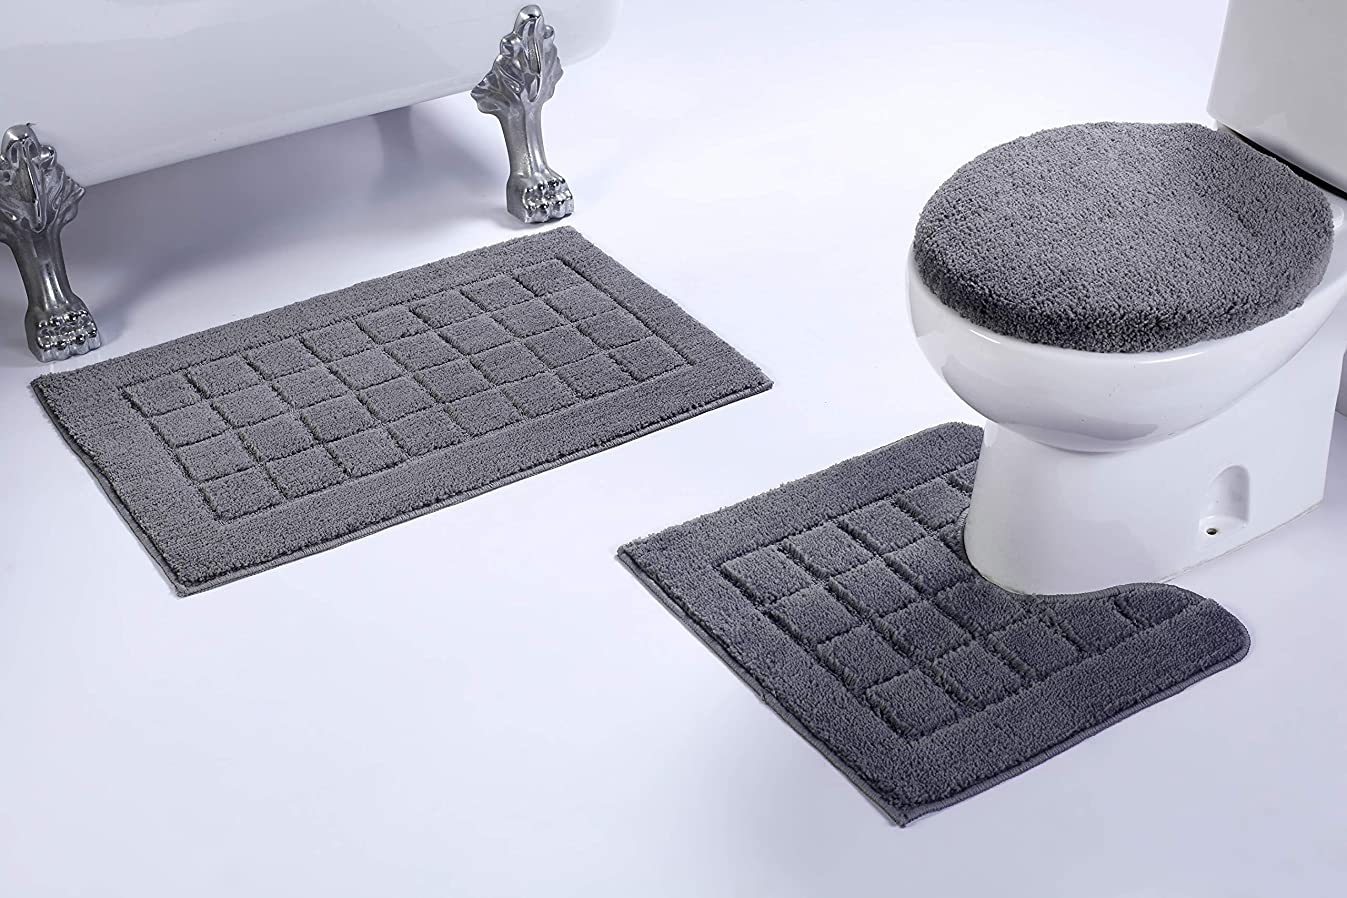 Fancy Linen 3pc Non-Slip Bath Mat Set with Square Pattern Solid Gray Bathroom U-Shaped Contour Rug, Mat and Toilet Lid Cover New # Bath 60